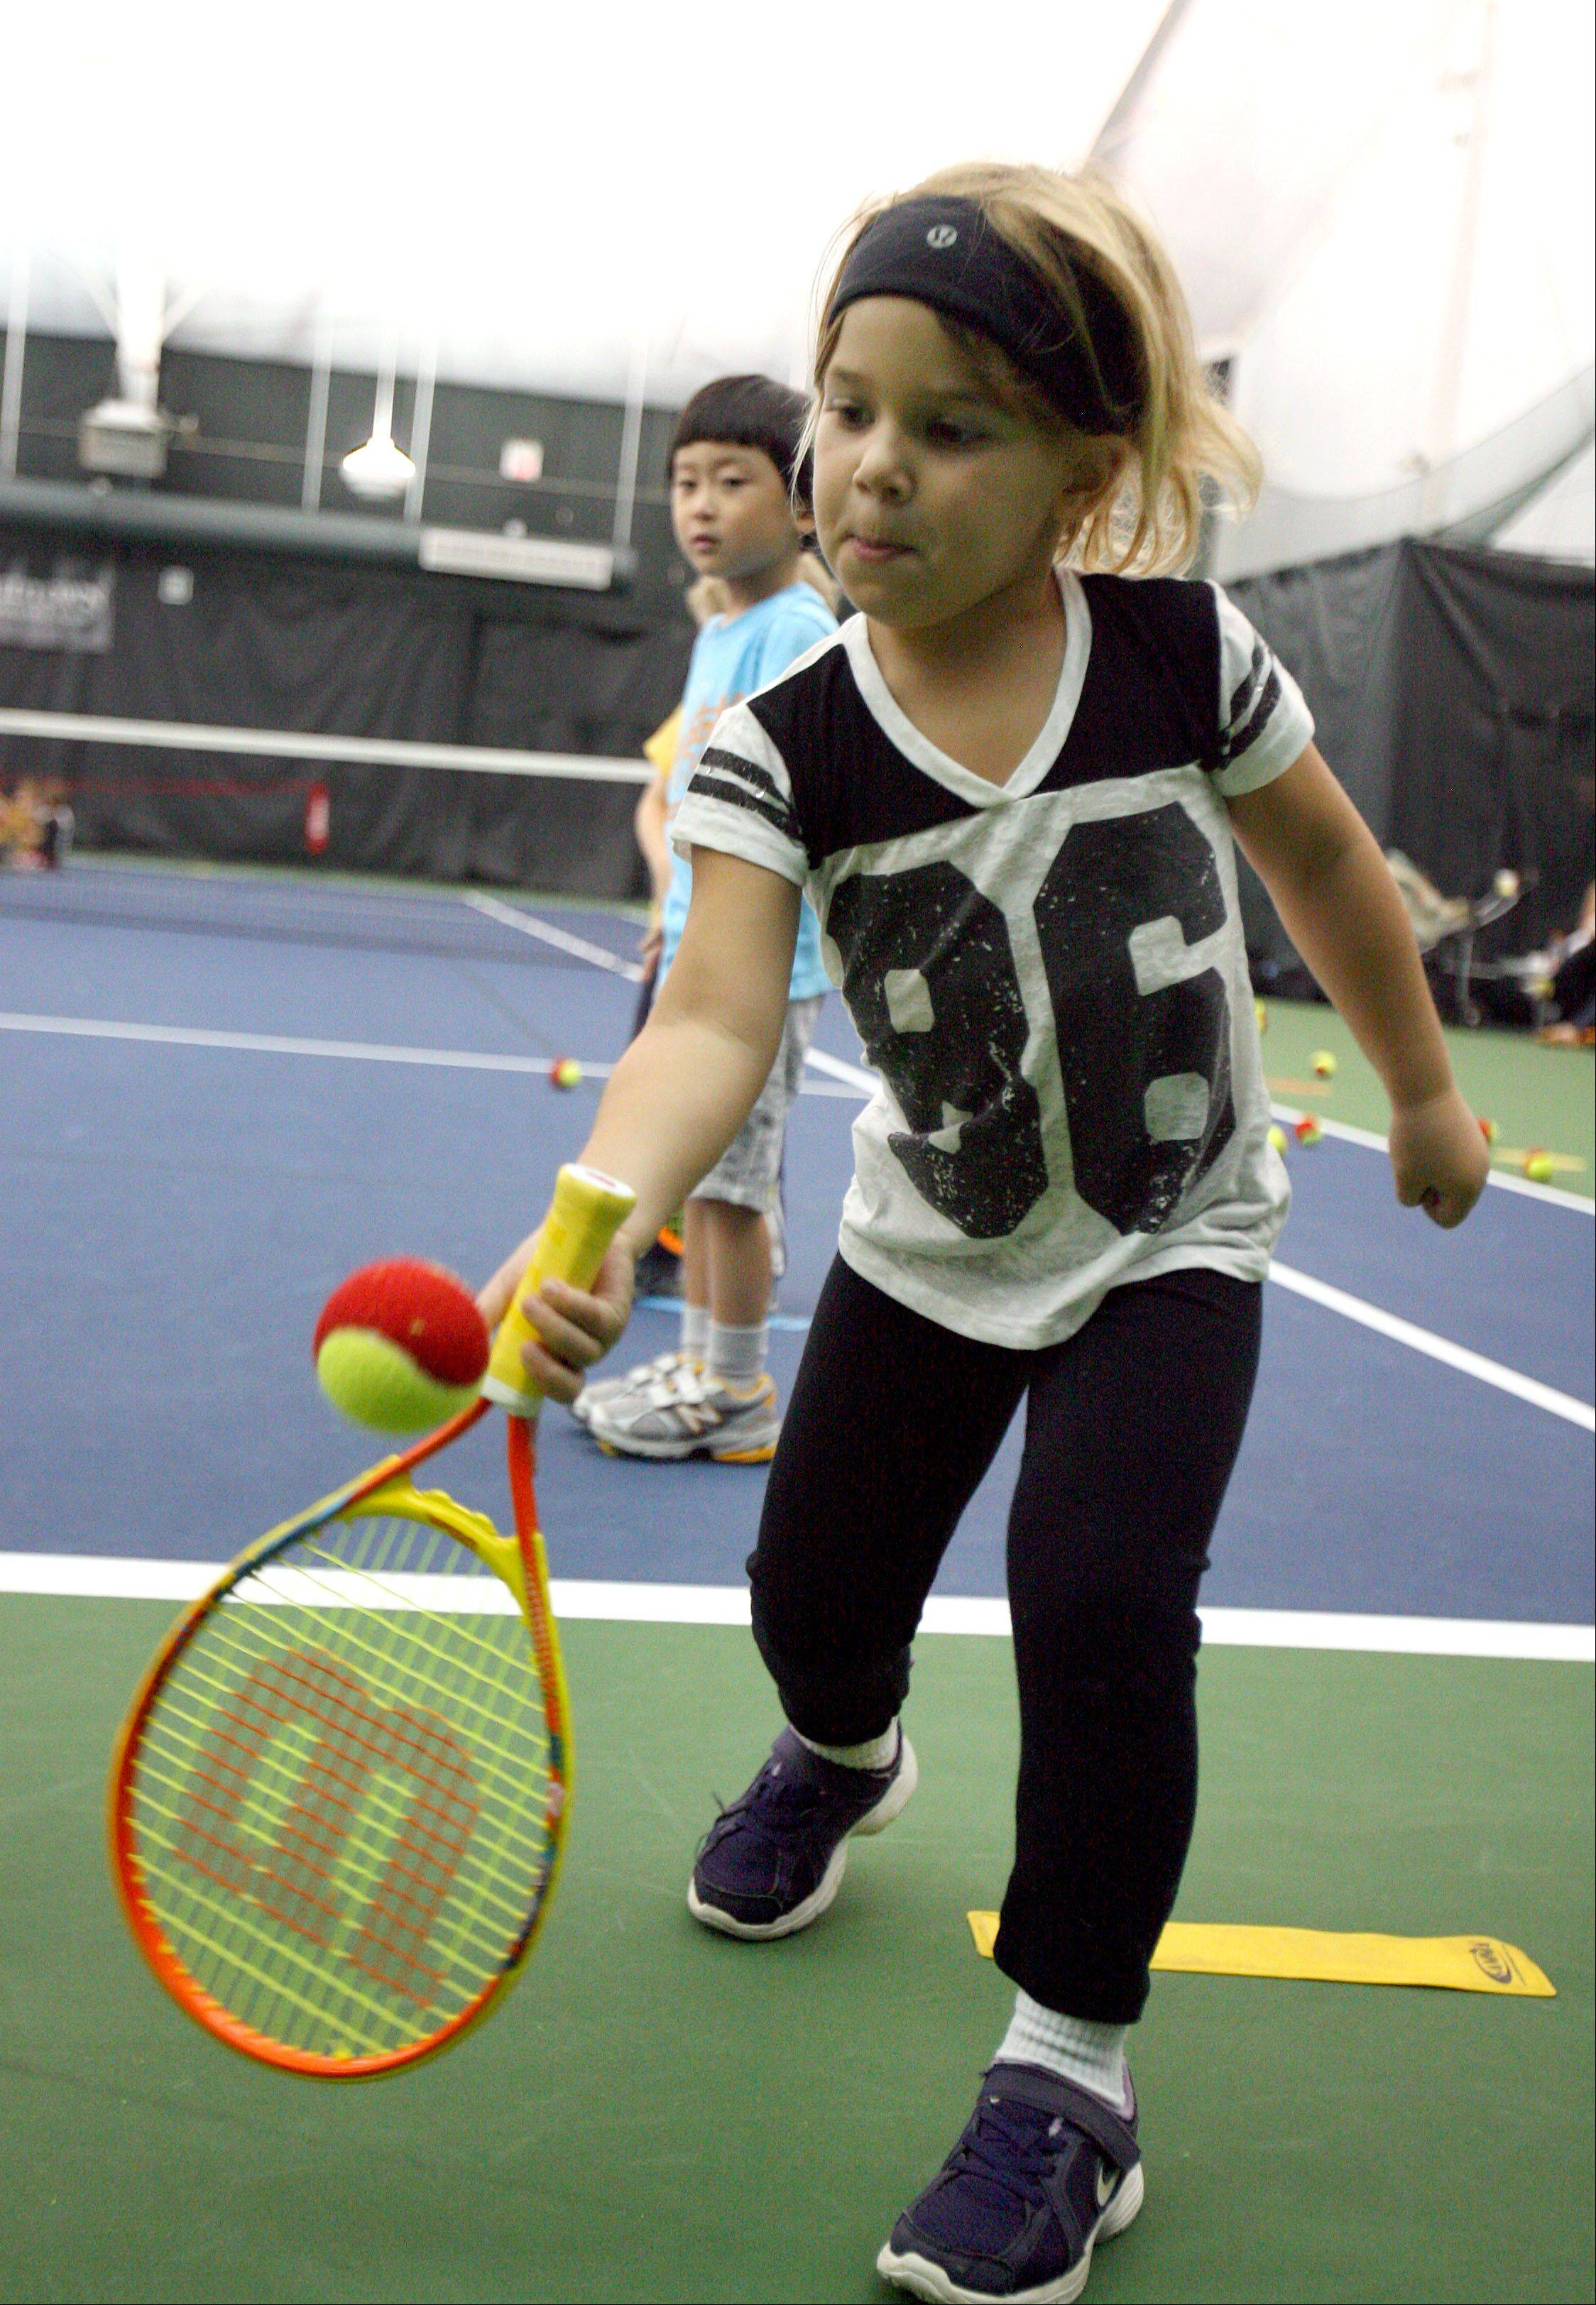 Julia Jacobson, 4, of Riverwoods hits the ball during the Midtown Athletic Club's Tennis Explorers class in Bannockburn. The program blends physical activities, tennis skills and storytelling in an on-court environment.